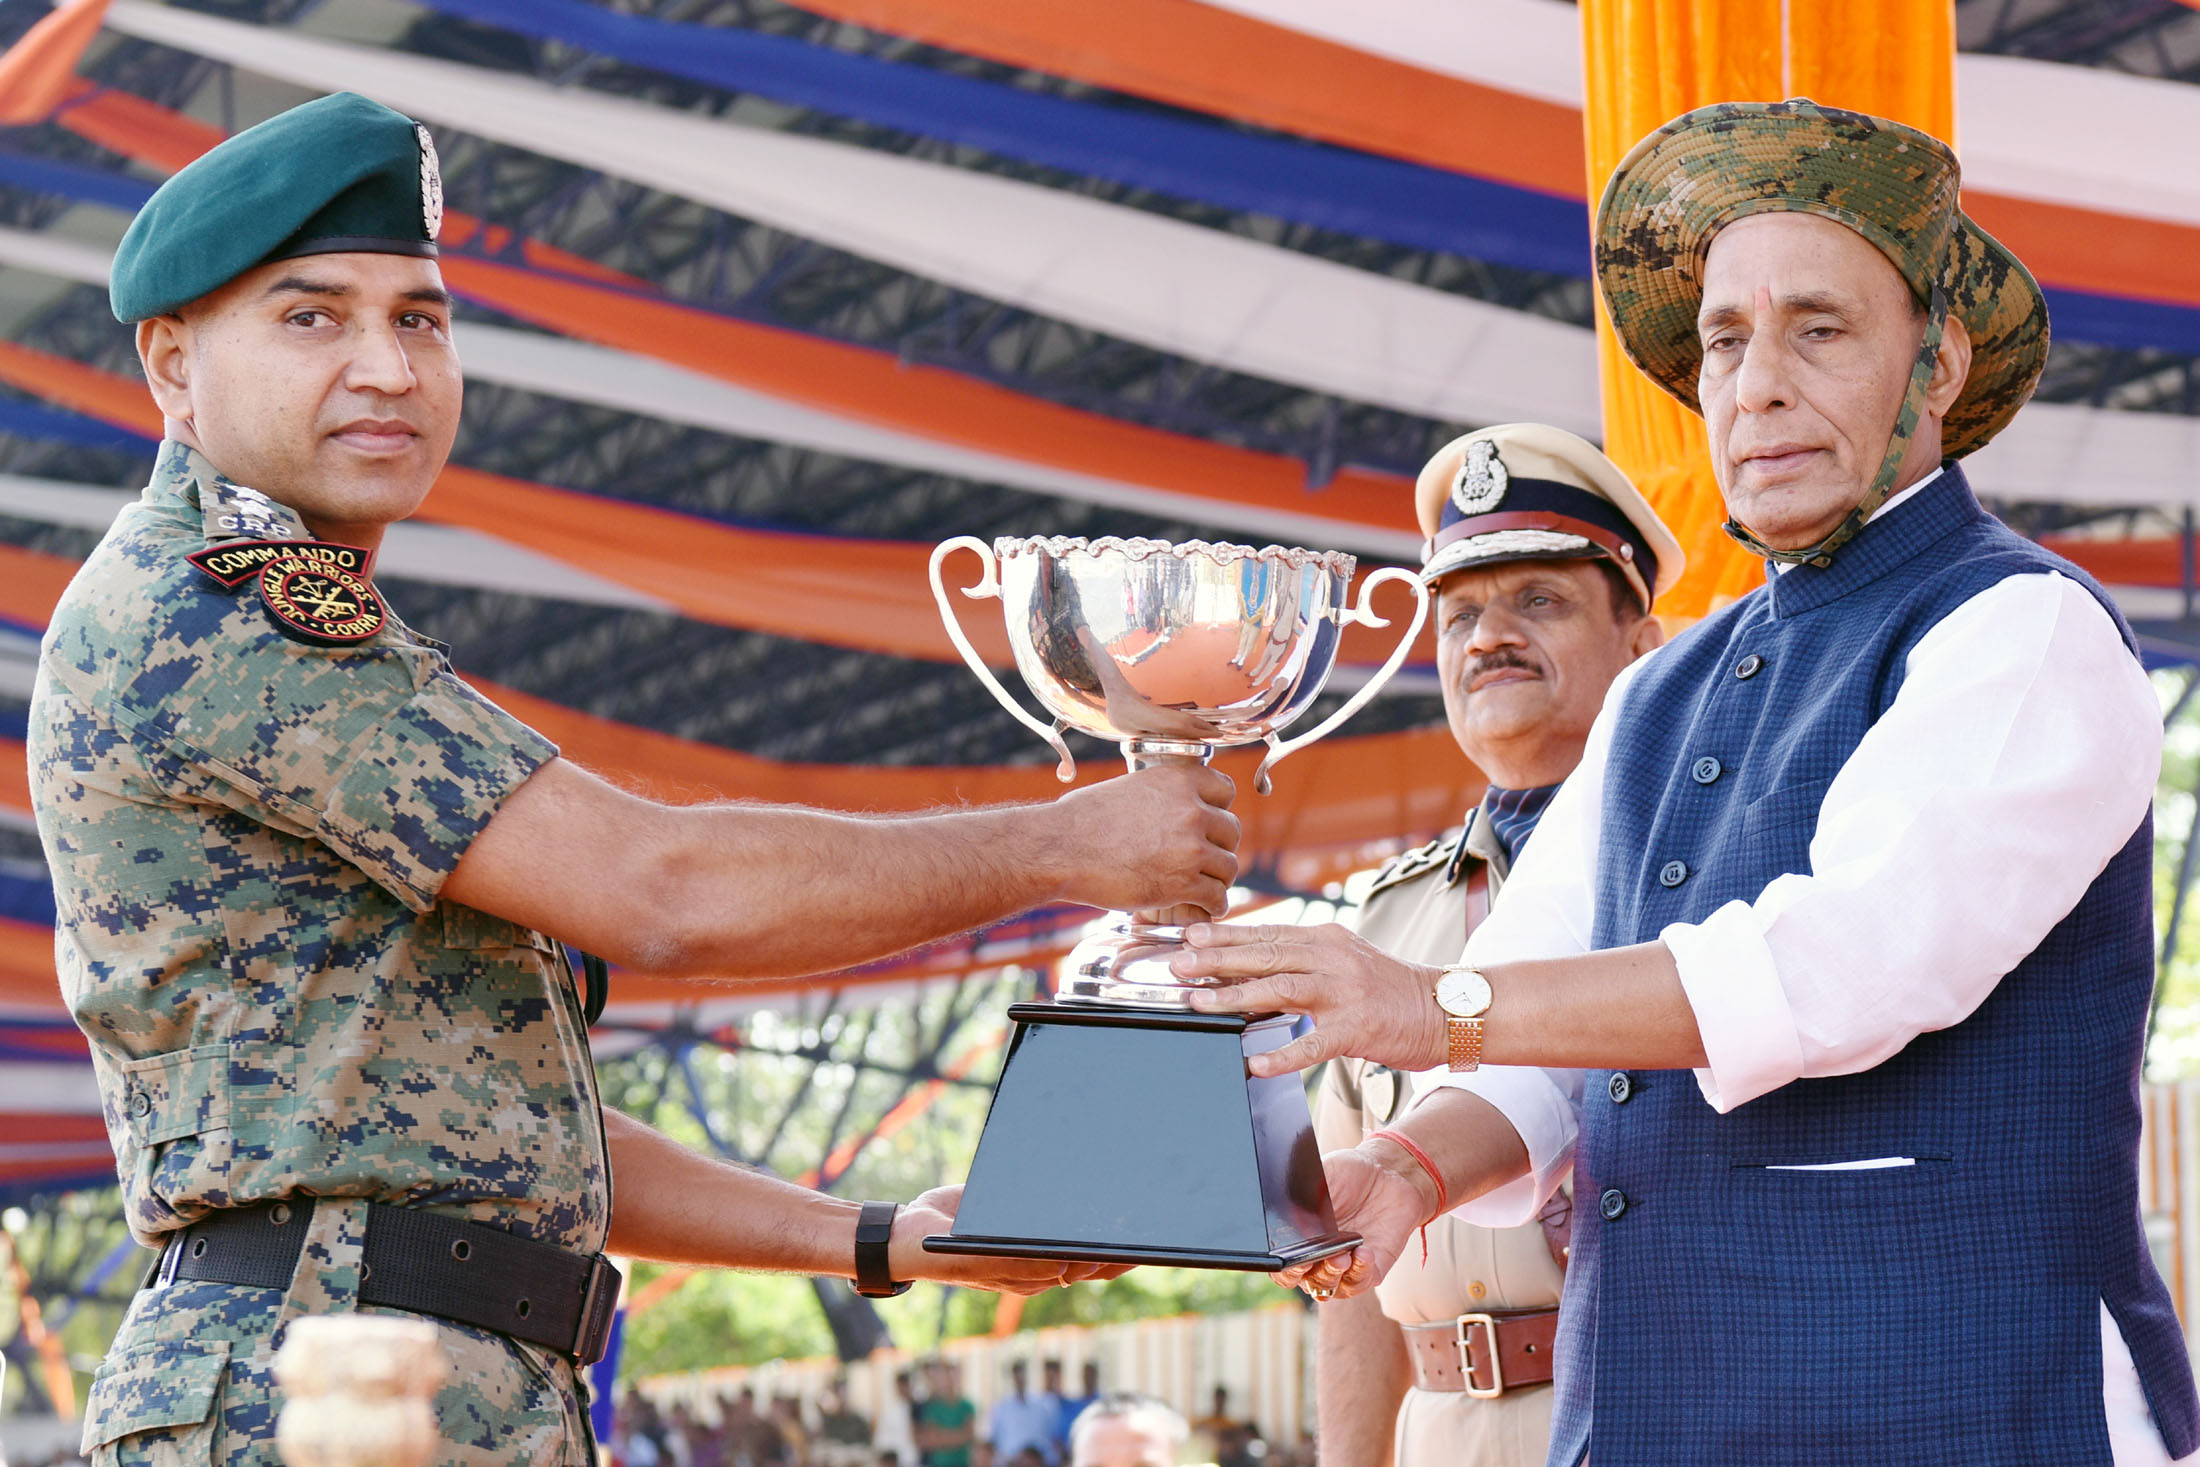 The Union Home Minister, Shri Rajnath Singh presenting trophies on the occasion of CRPF's 79th Raising Day Parade, in Gurugram, Haryana in March 24, 2018.